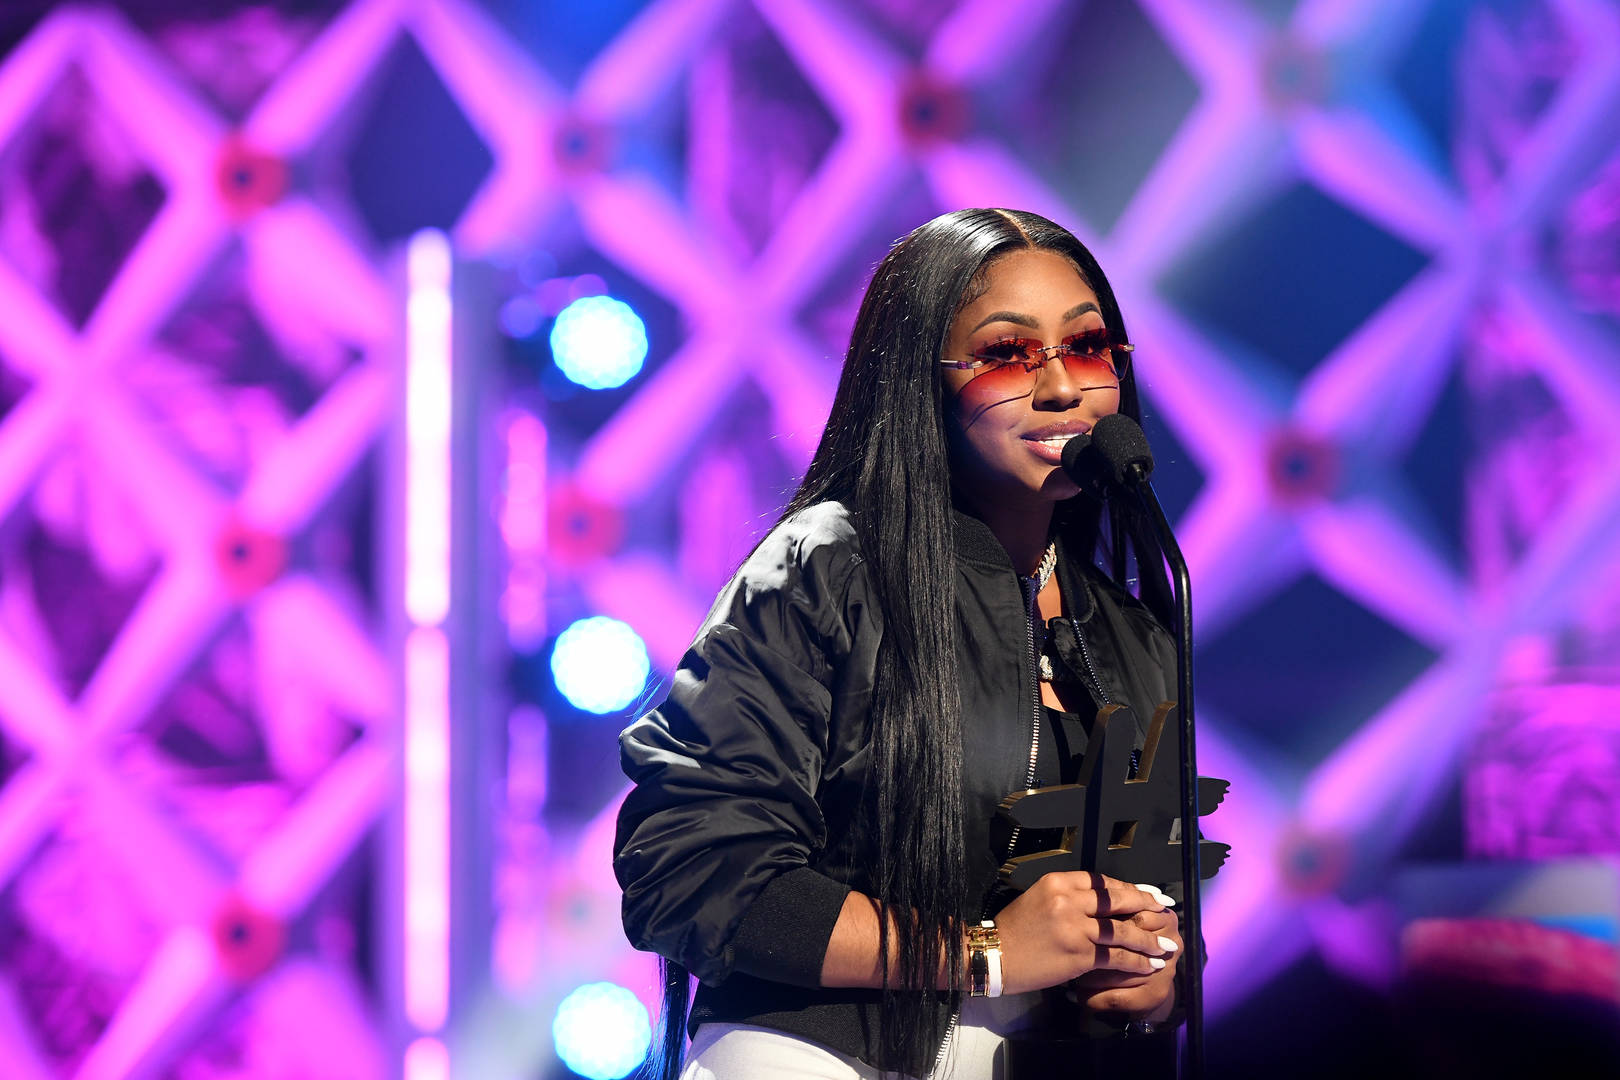 Yung Miami accepts an award onstage during the 2019 BET Social Awards at Tyler Perry Studio on March 3, 2019 in Atlanta, Georgia.